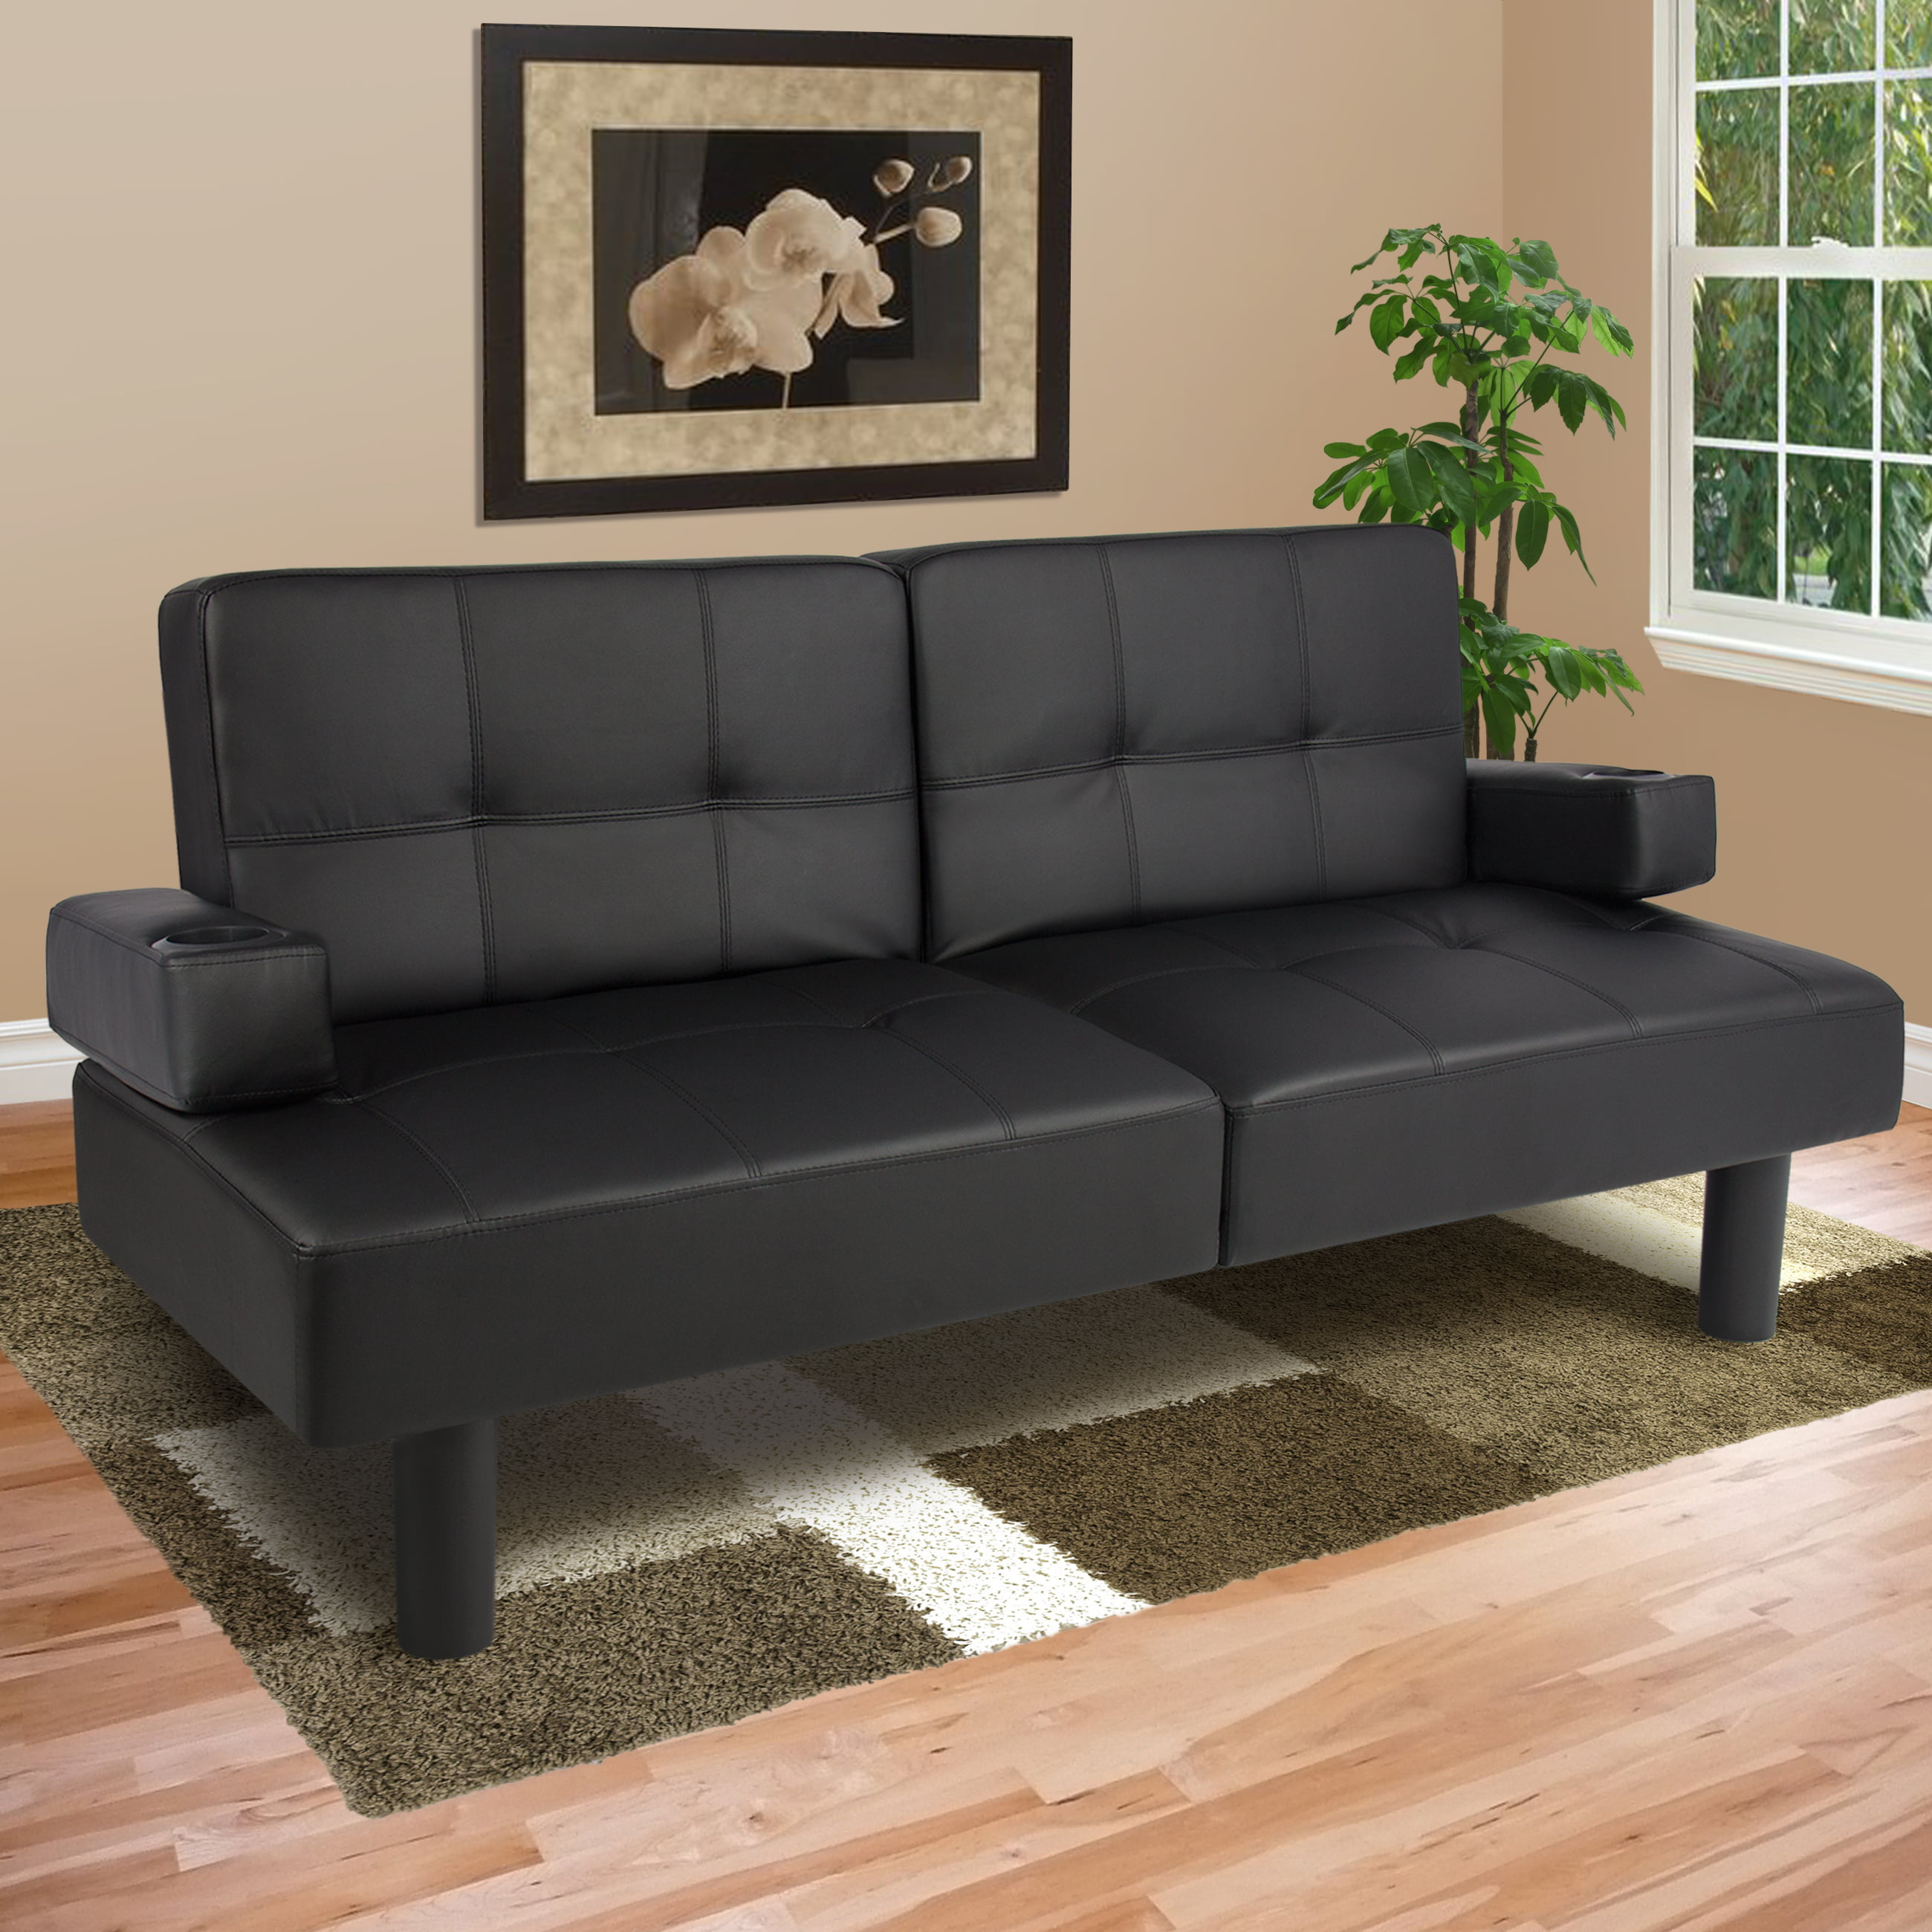 Leather Faux Fold Down Futon Sofa Bed Couch Sleeper Furniture Lounge  Convertible   Walmart.com